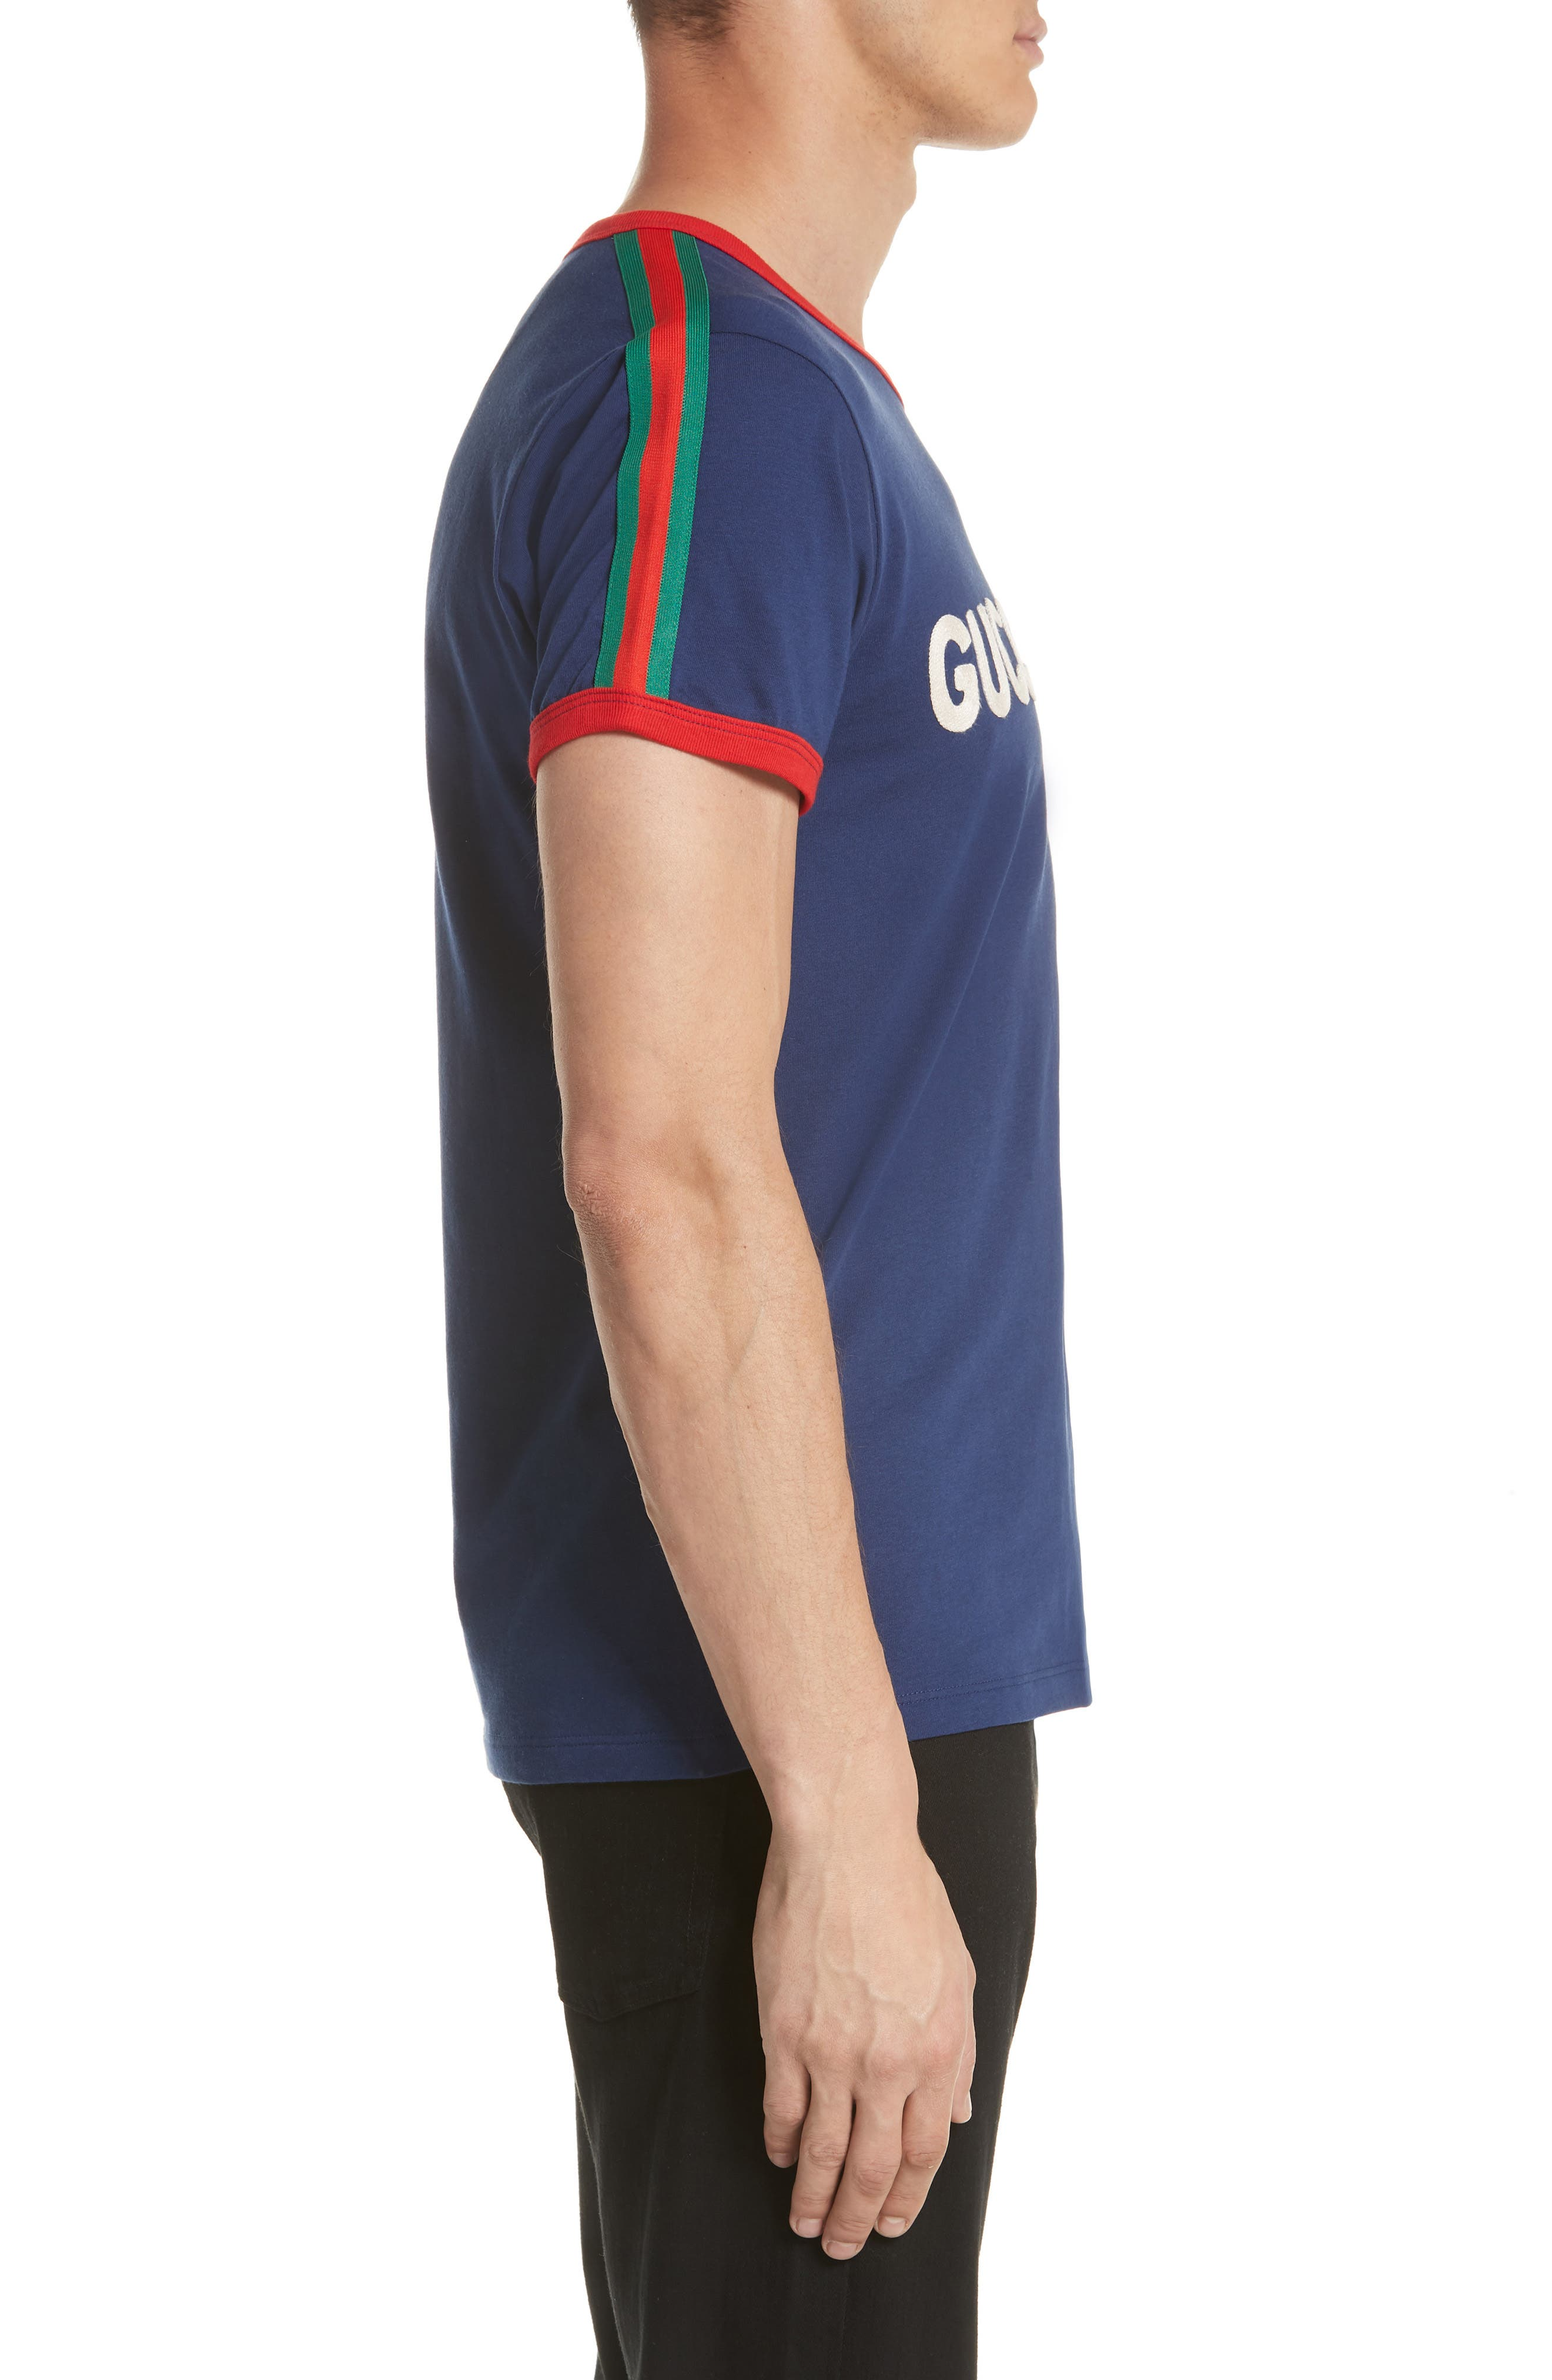 Guccification T-Shirt,                             Alternate thumbnail 3, color,                             968